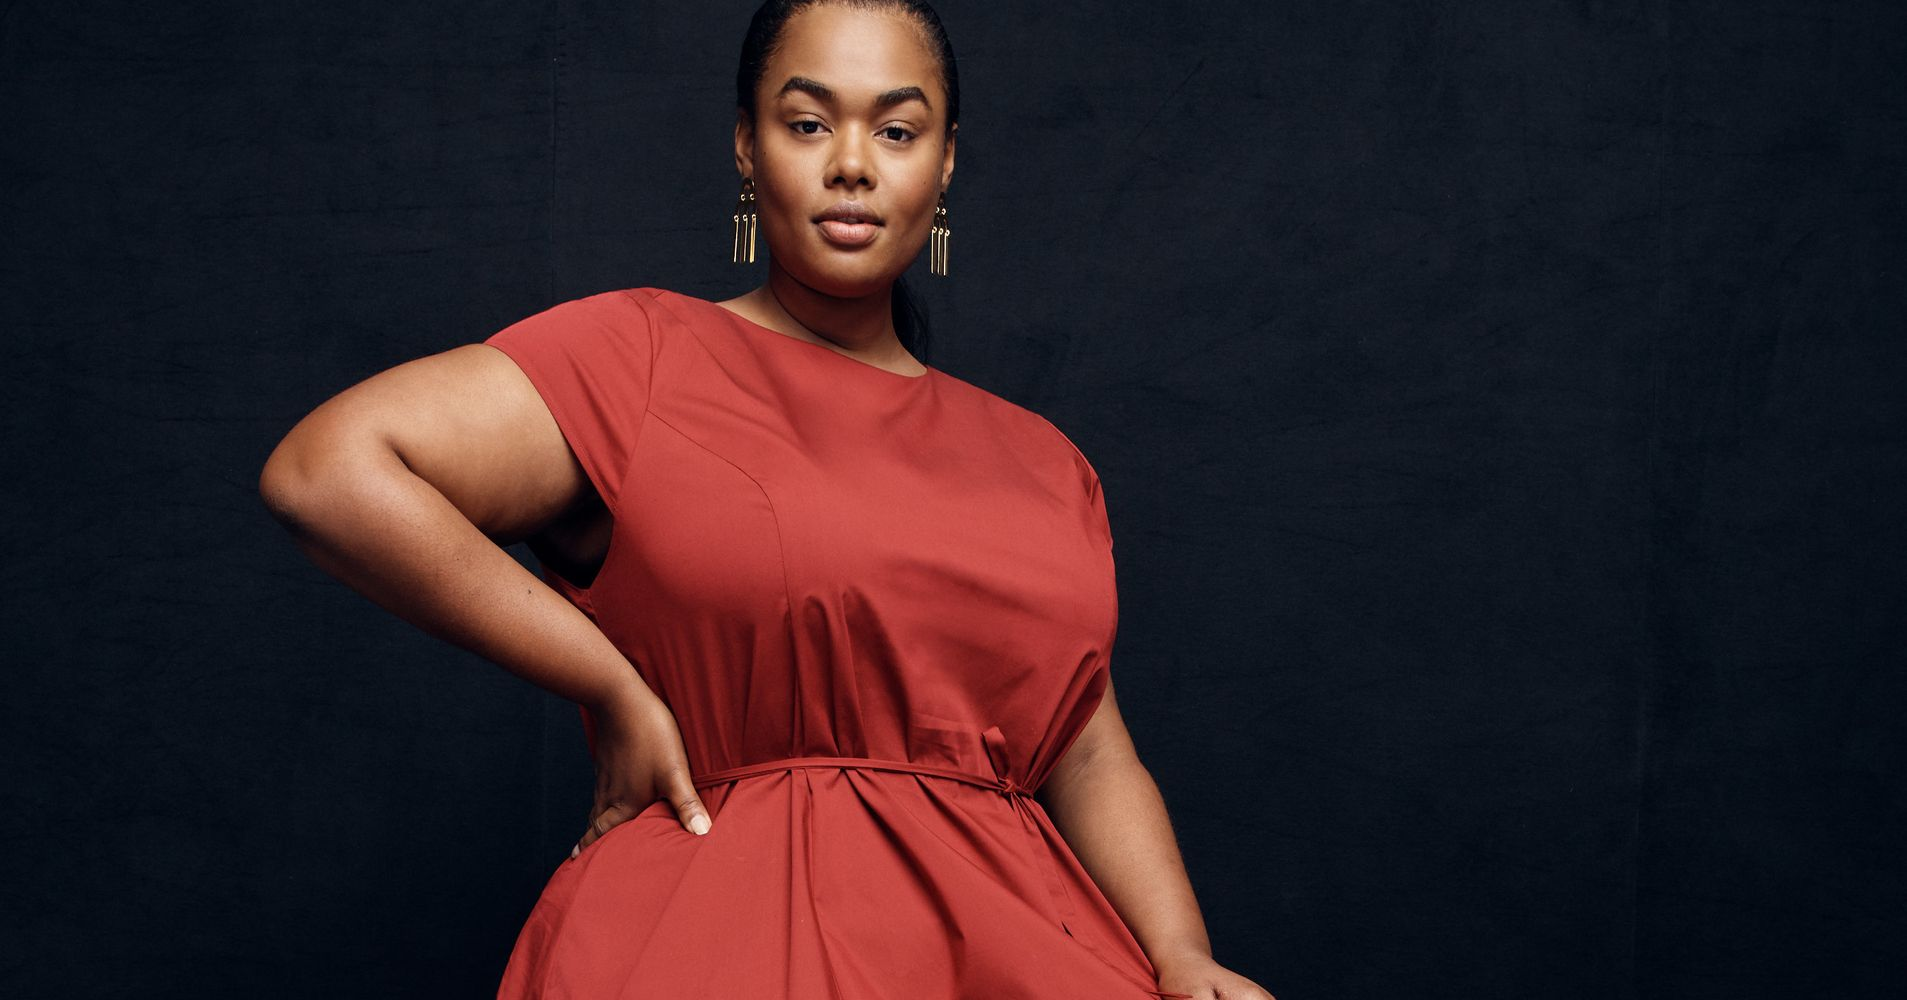 b64fb42a64 J.Crew's New Plus-Size Collection Now Has Styles Up To 5X | HuffPost Life